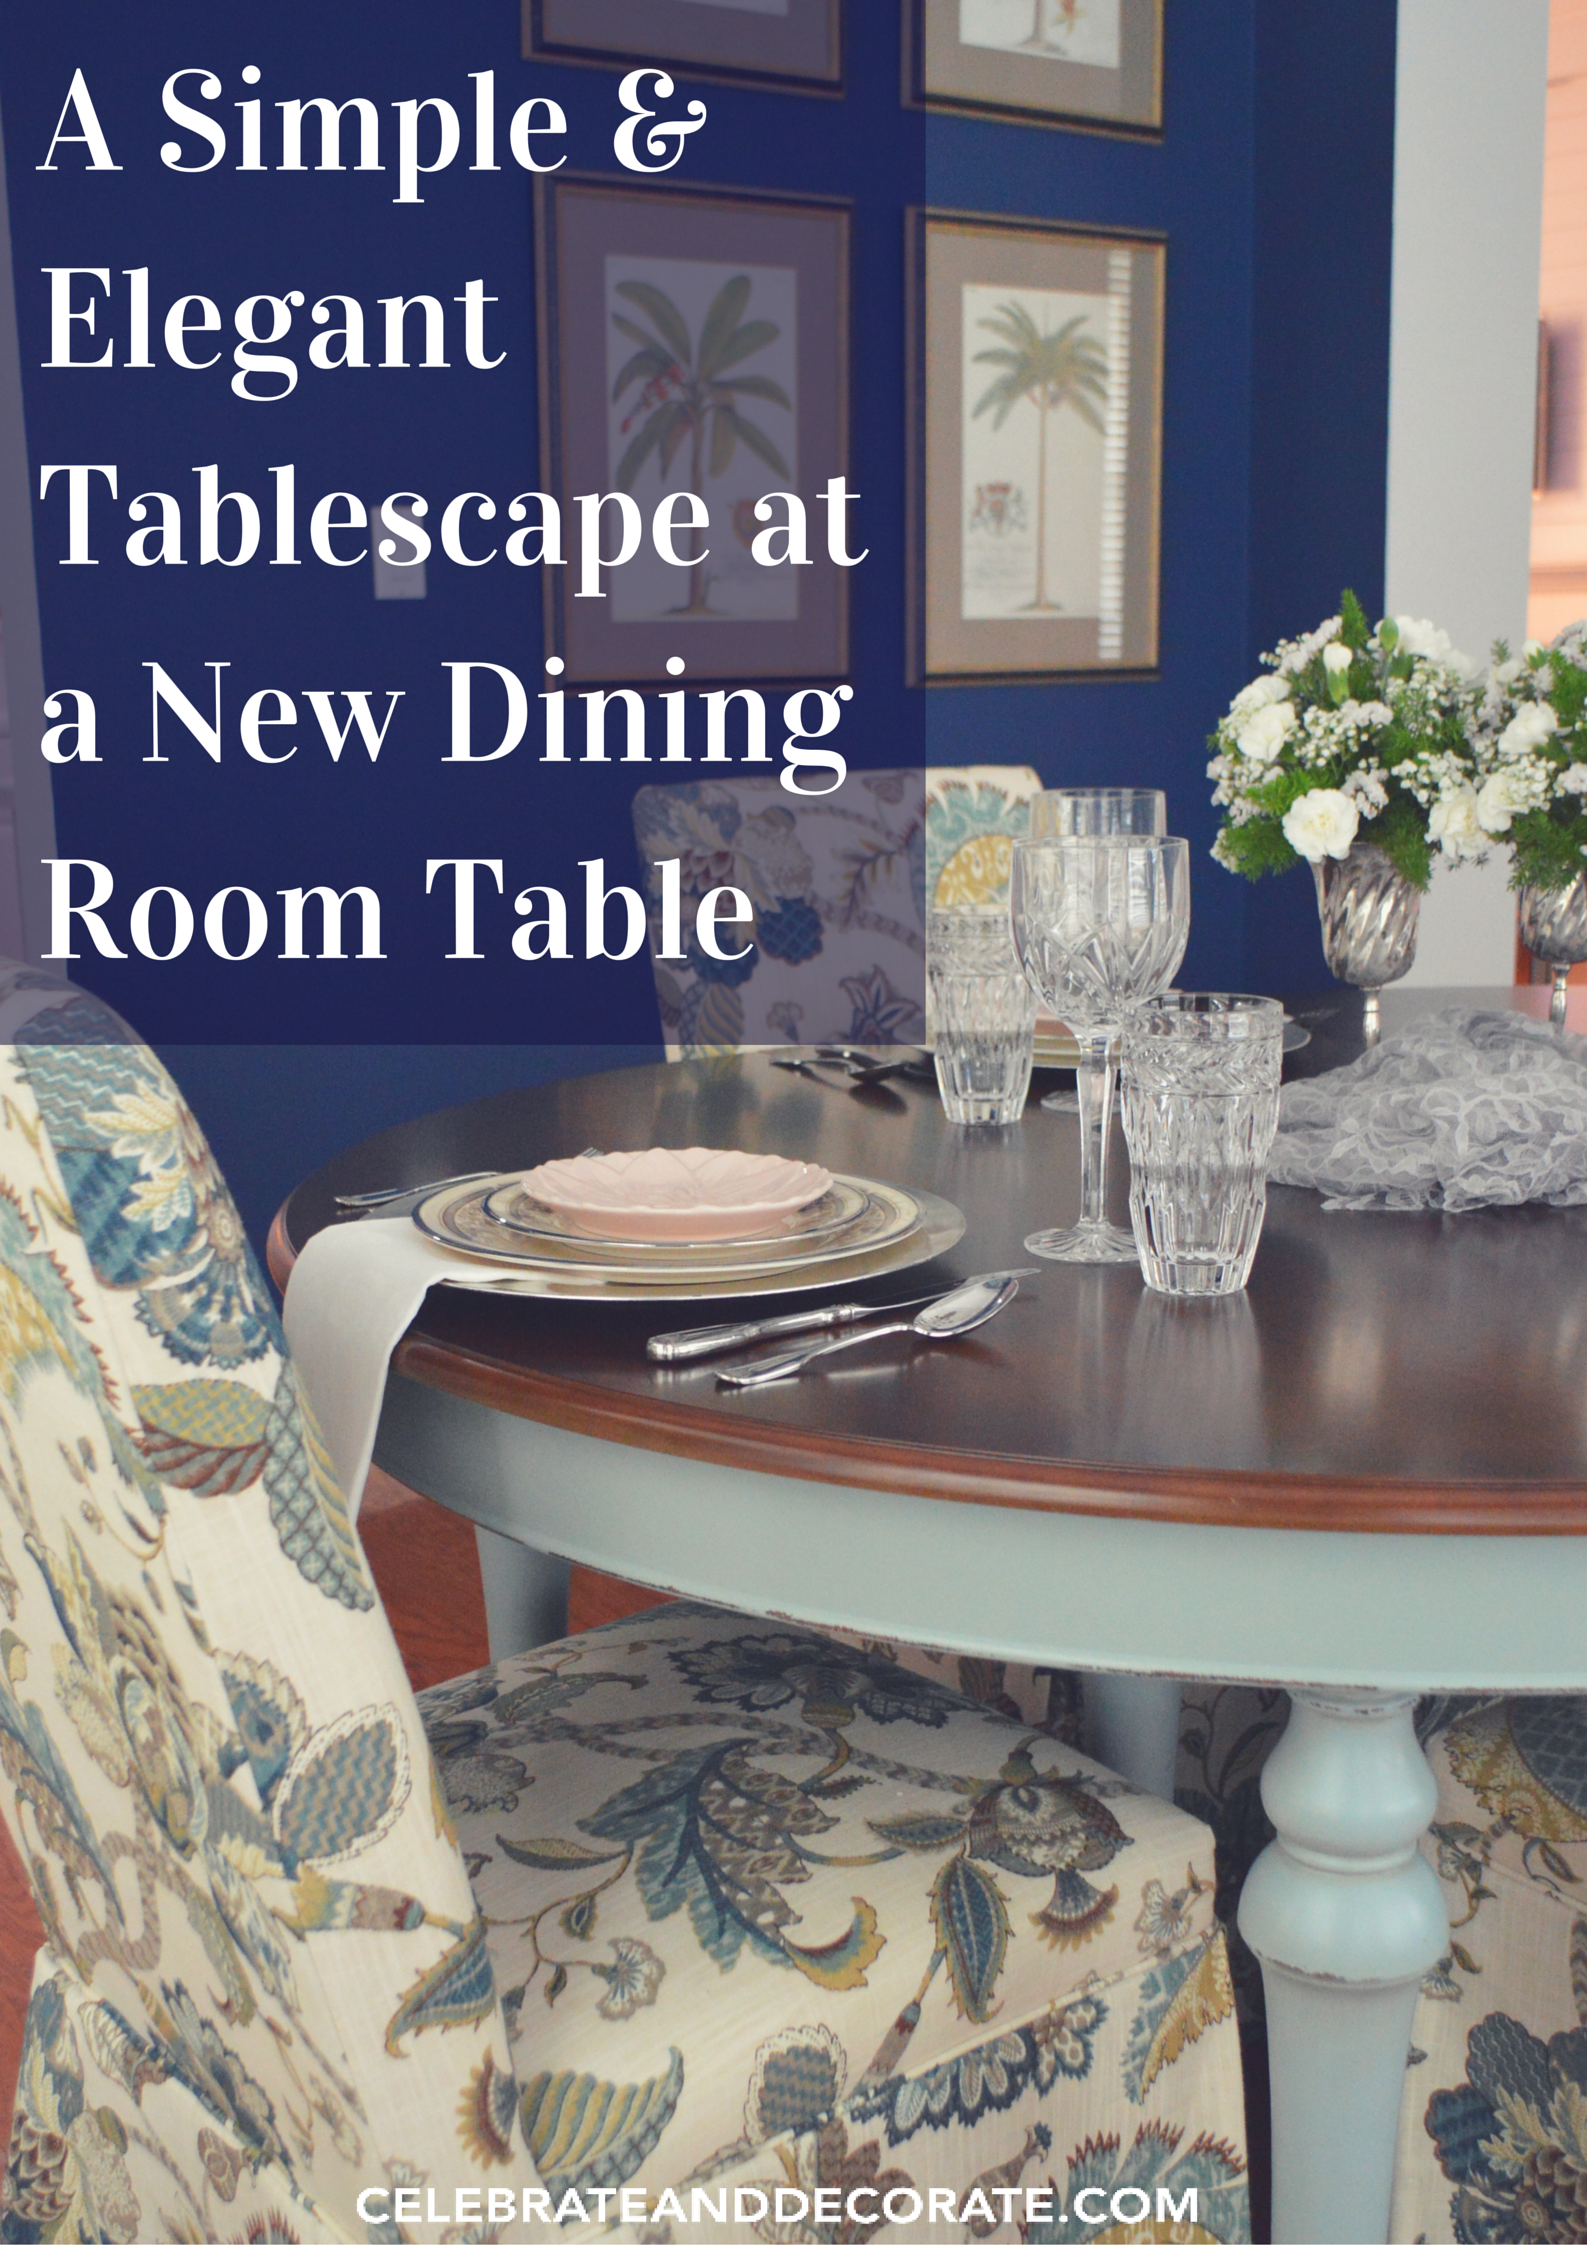 a simple elegant tablescape at a new dining table celebrate a simple elegant tablescape at a new dining table celebrate decorate